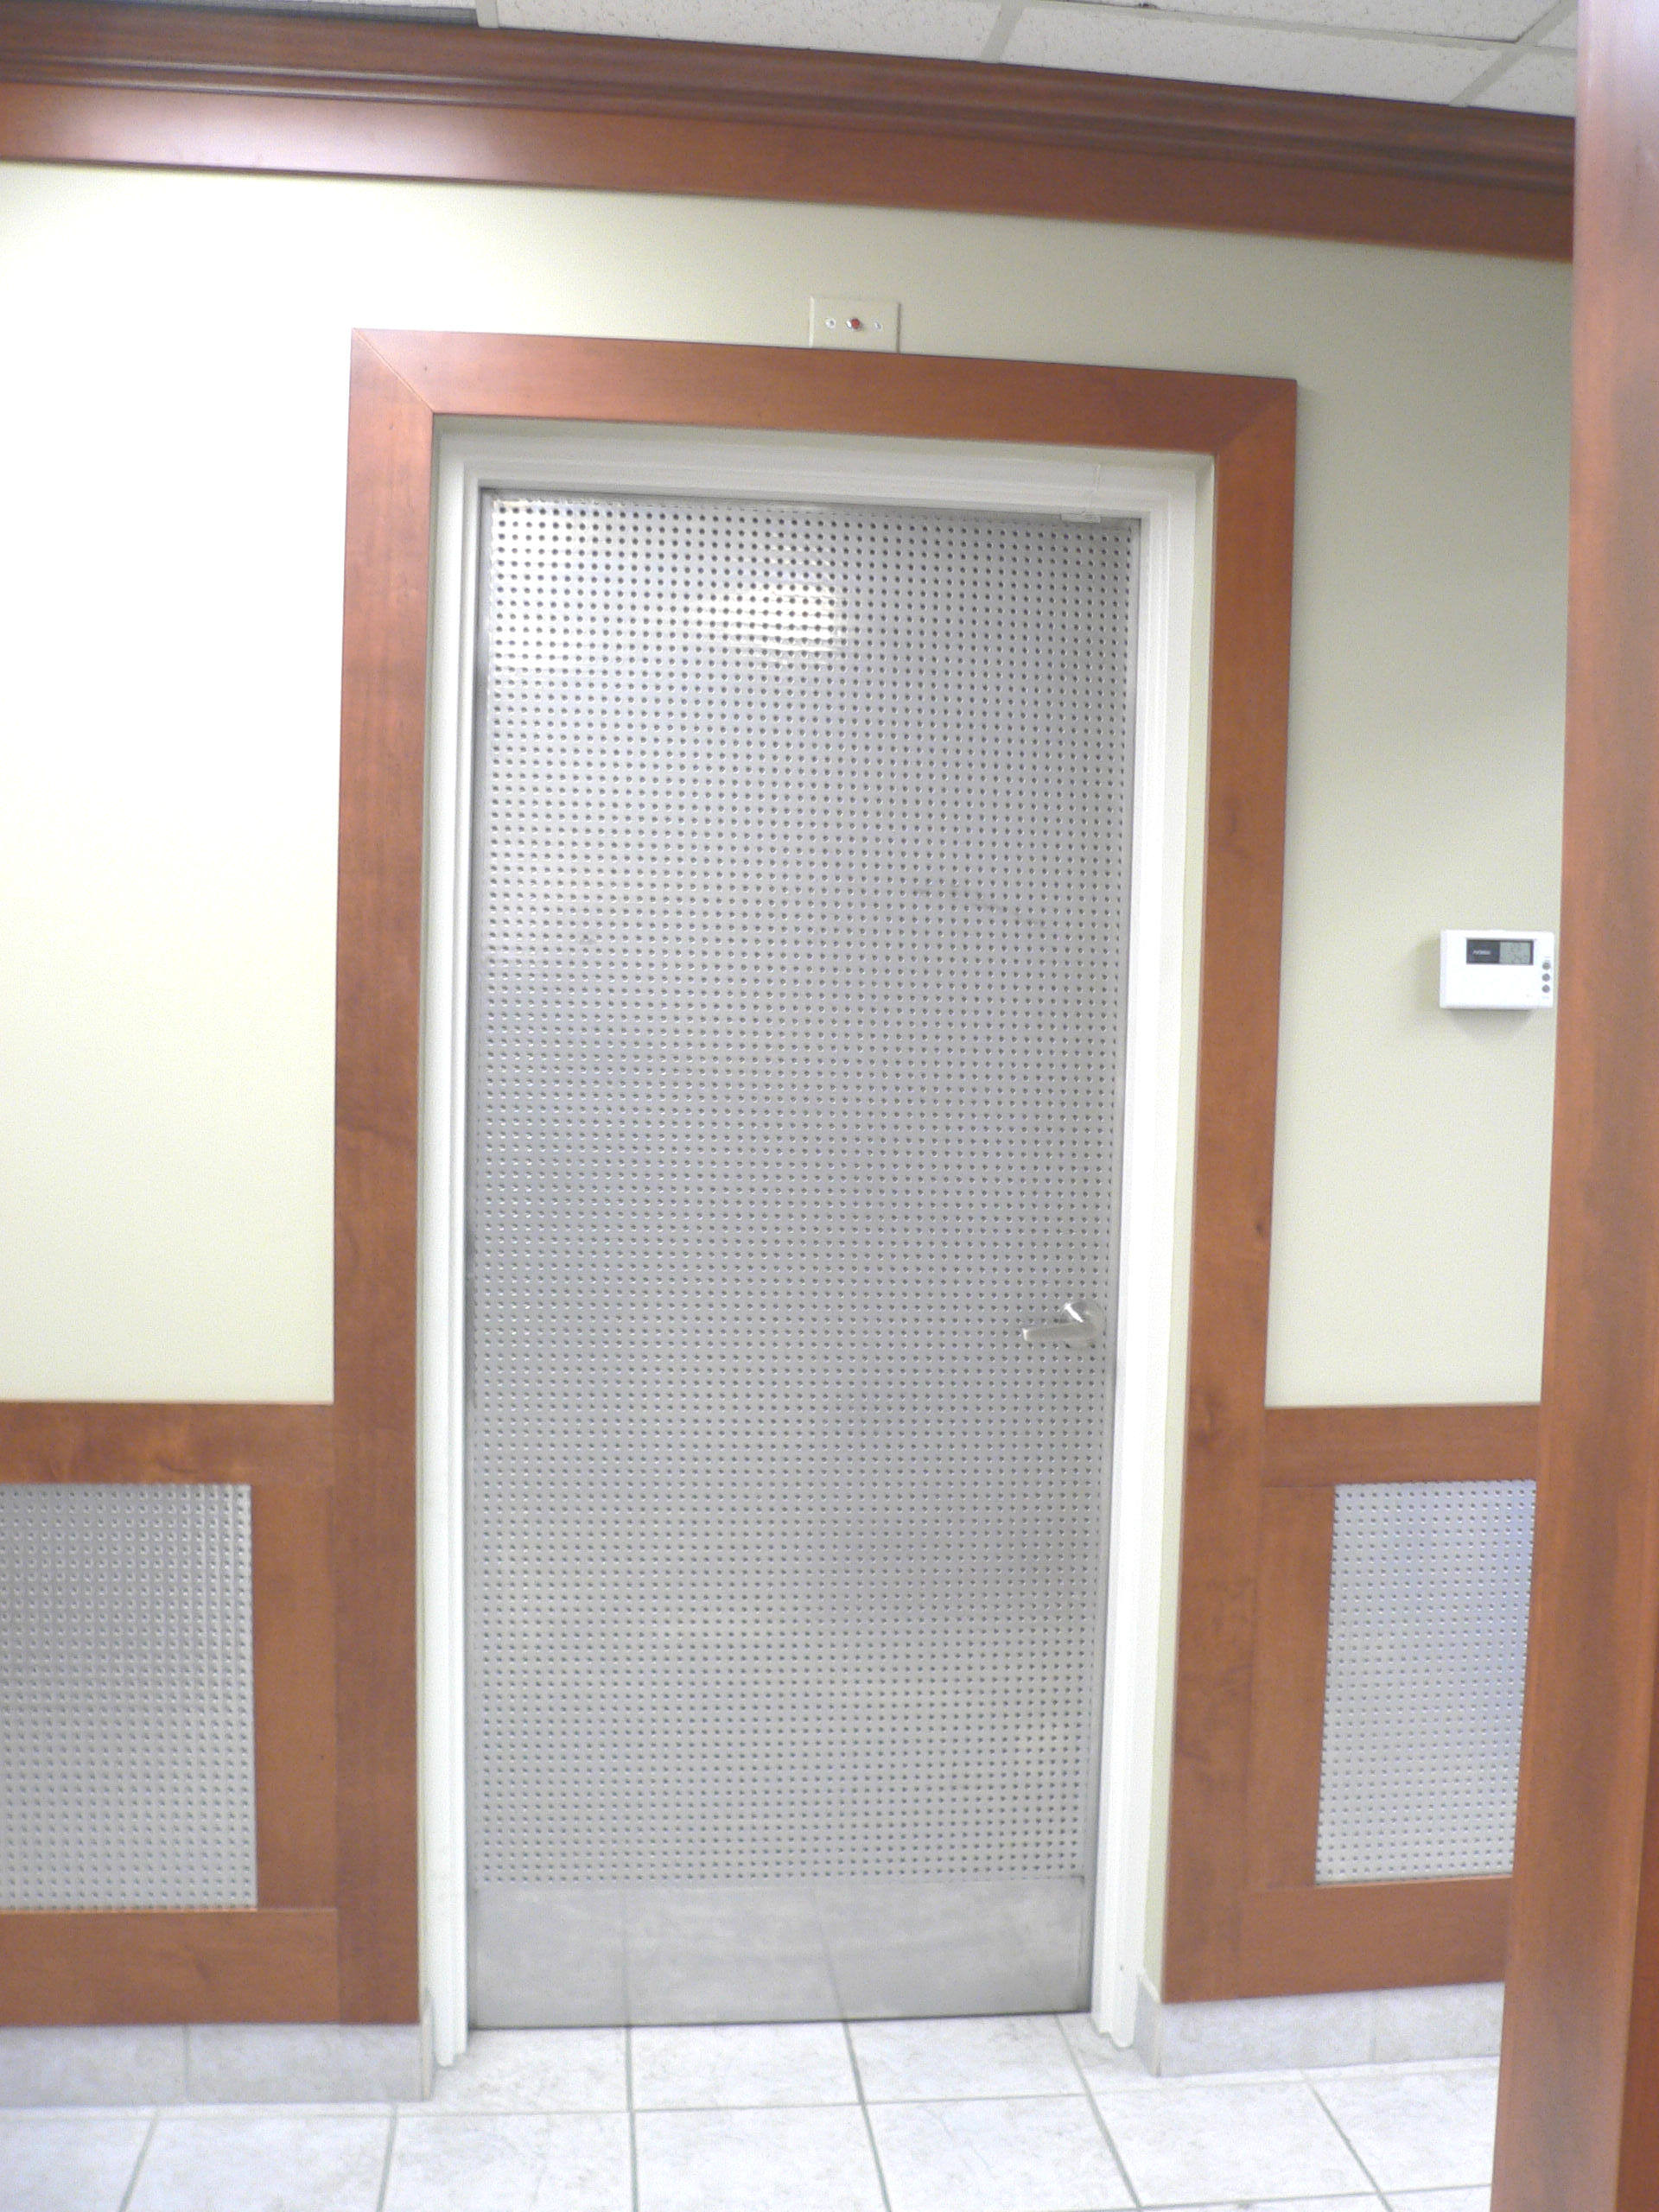 Industrial Grade Fire Door Rated To Hydrocarbon Curve And Blast Resistance.